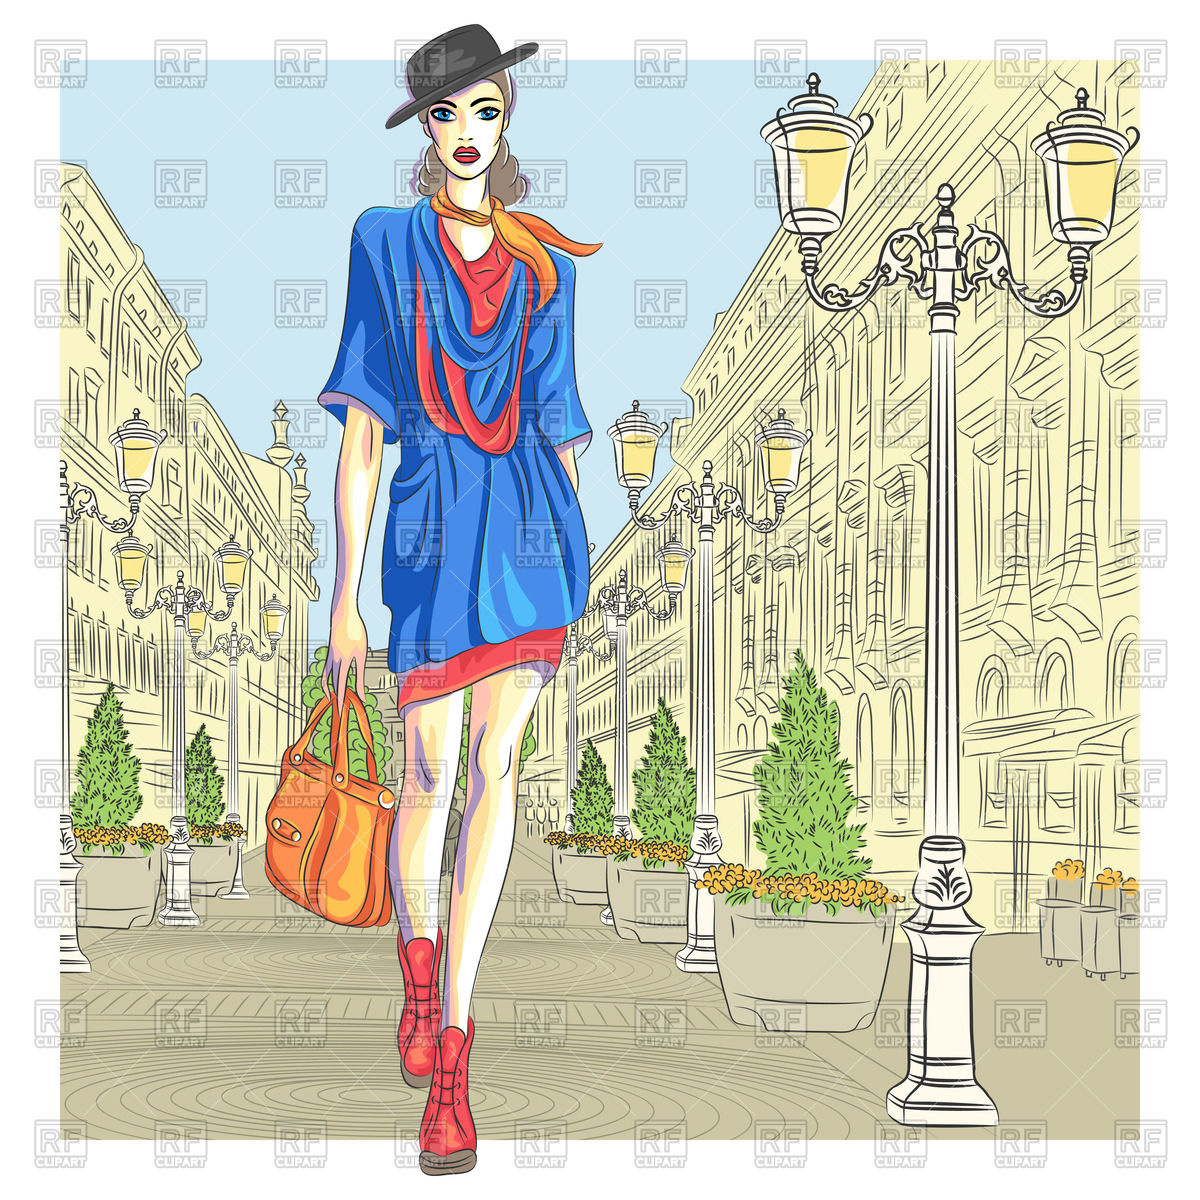 Fashionable girl with bag in blue dress, hat walking in St.